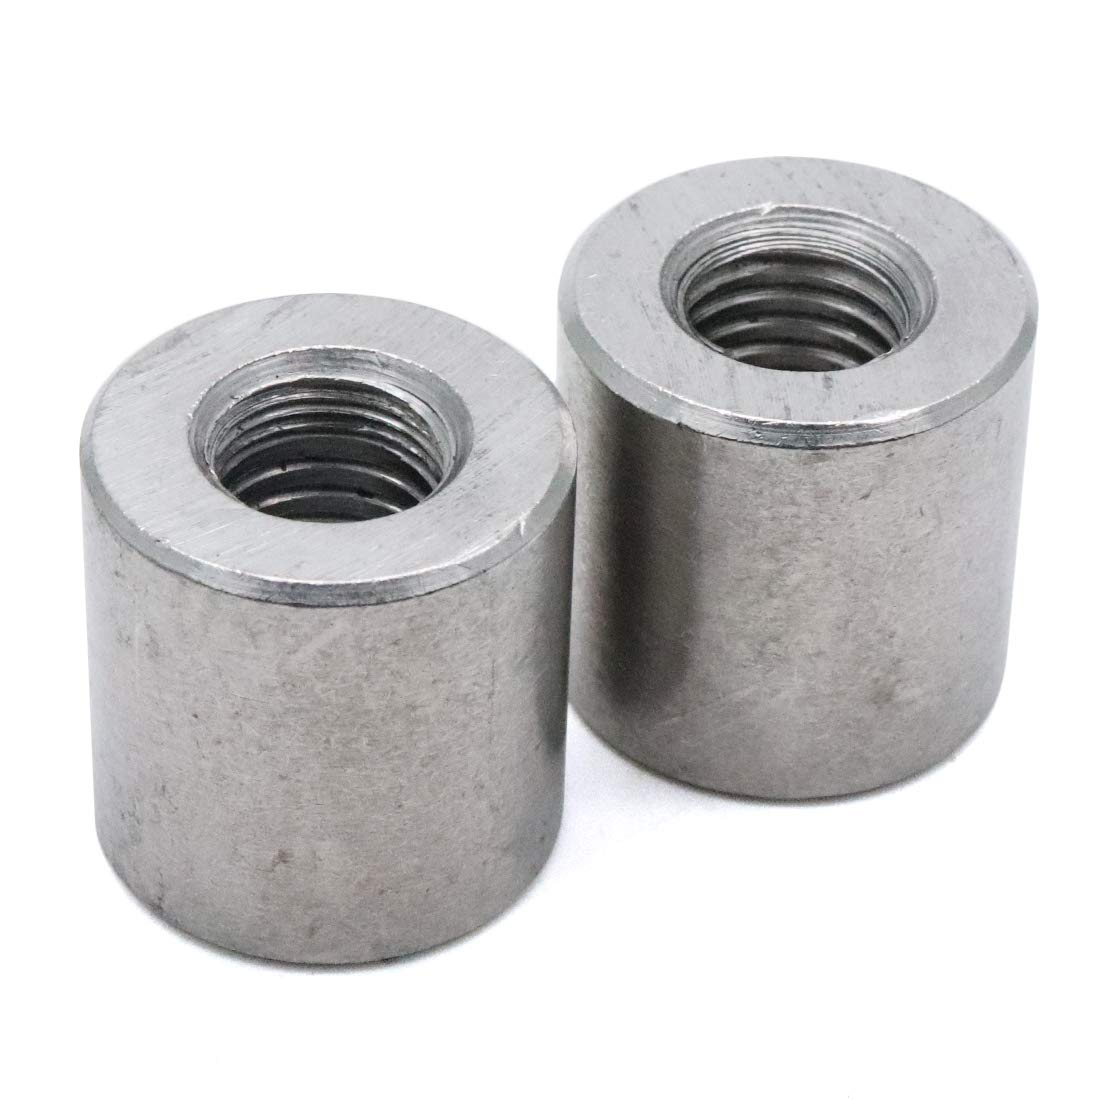 Yootop M5 Thread Round Coupling Nut Sleeve Stud Nut 10mm Height 12-Pack